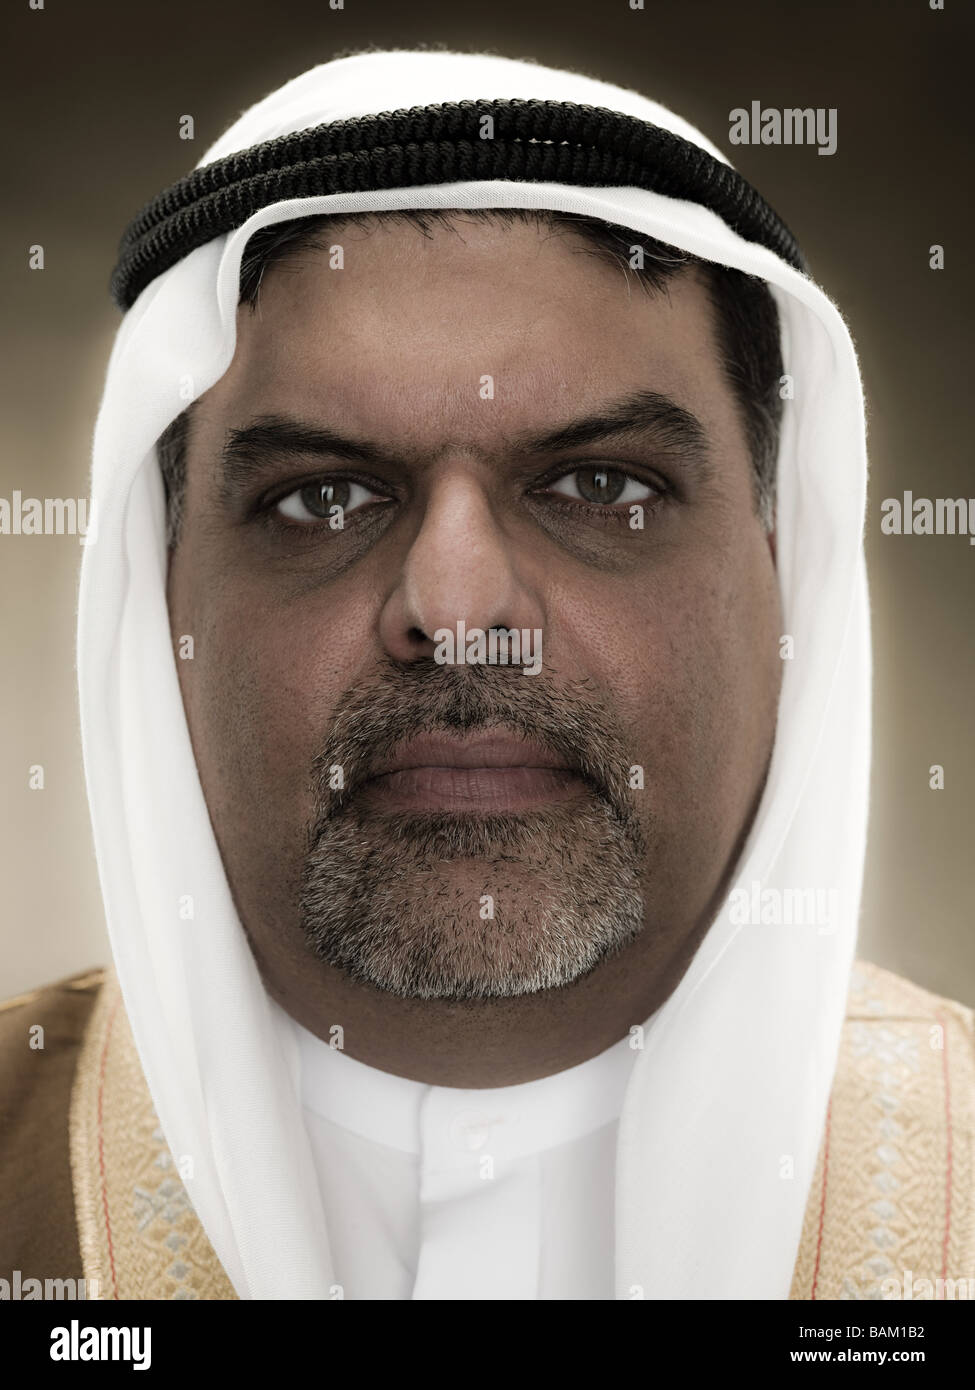 Portrait of a muslim man - Stock Image